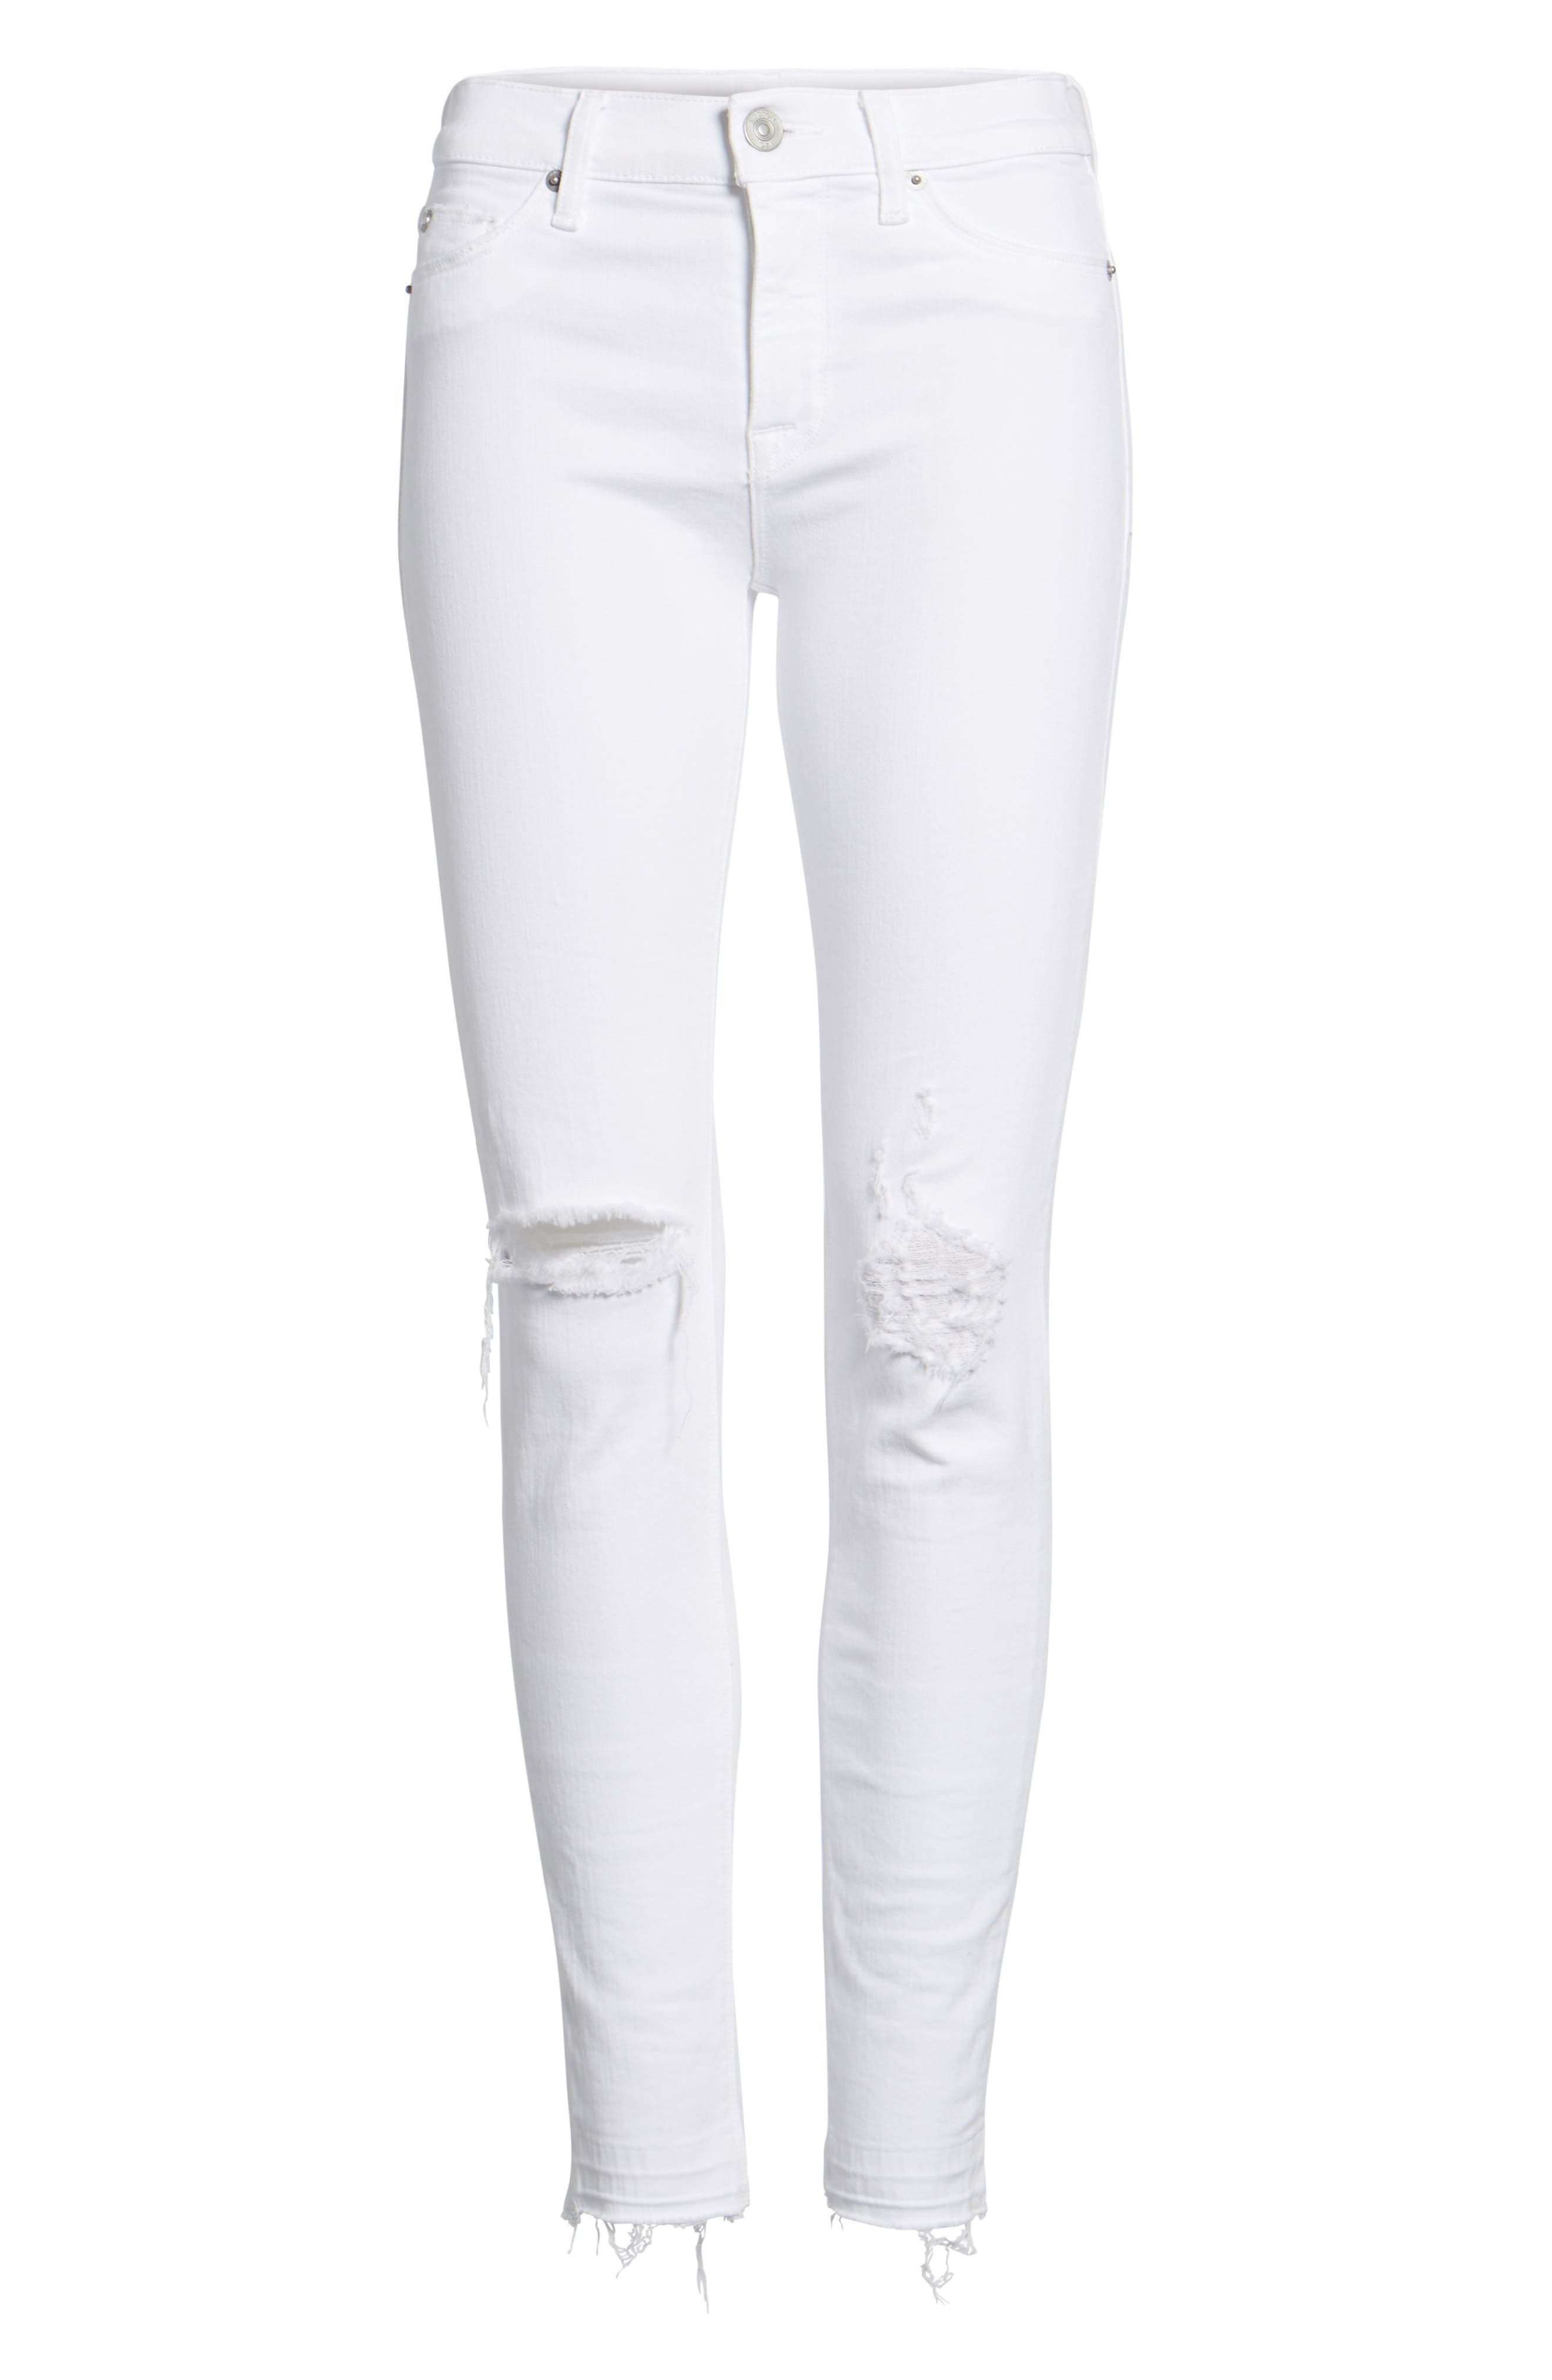 Nico Ankle Super Skinny Jeans,                             Alternate thumbnail 7, color,                             Optical White Destructed